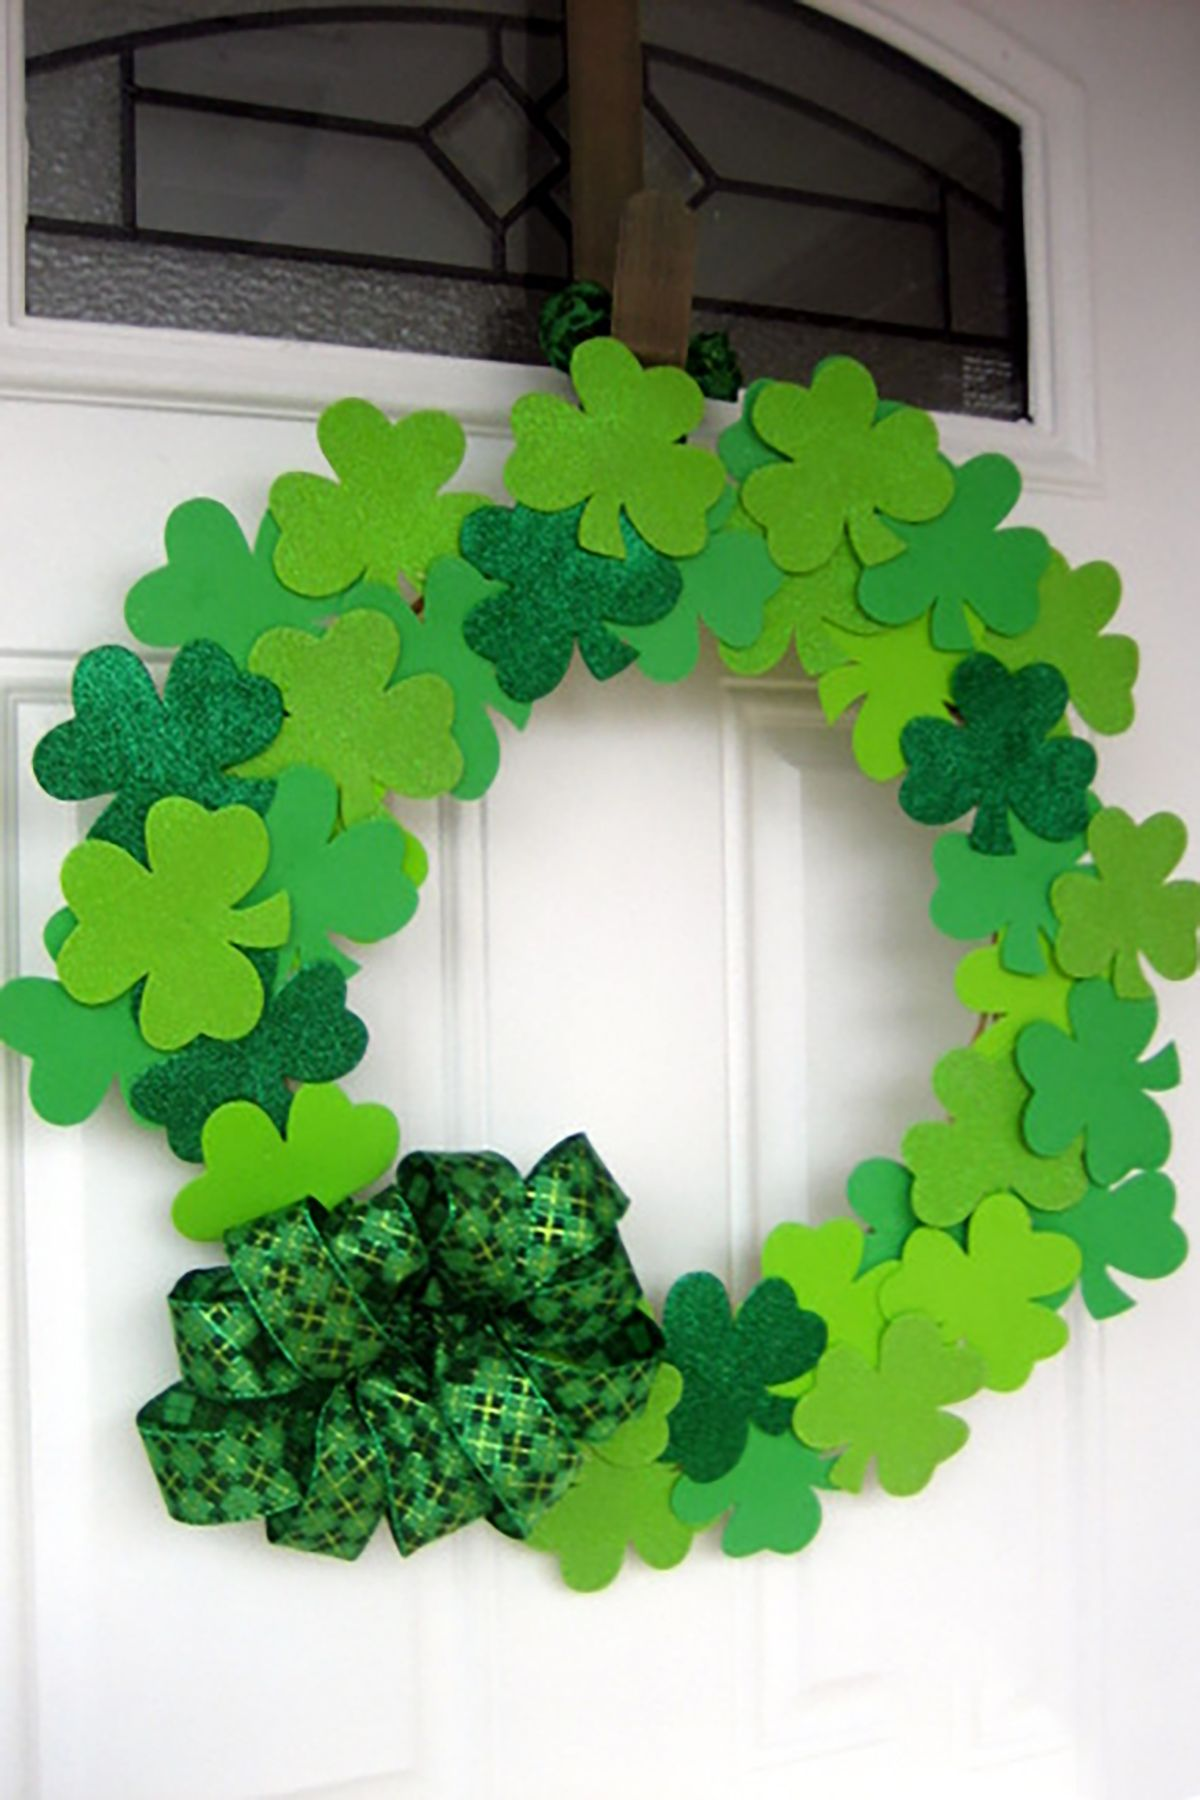 stewart st martha day s accessories decorations and stirr patrick decor shamrock patricks party crafts vert